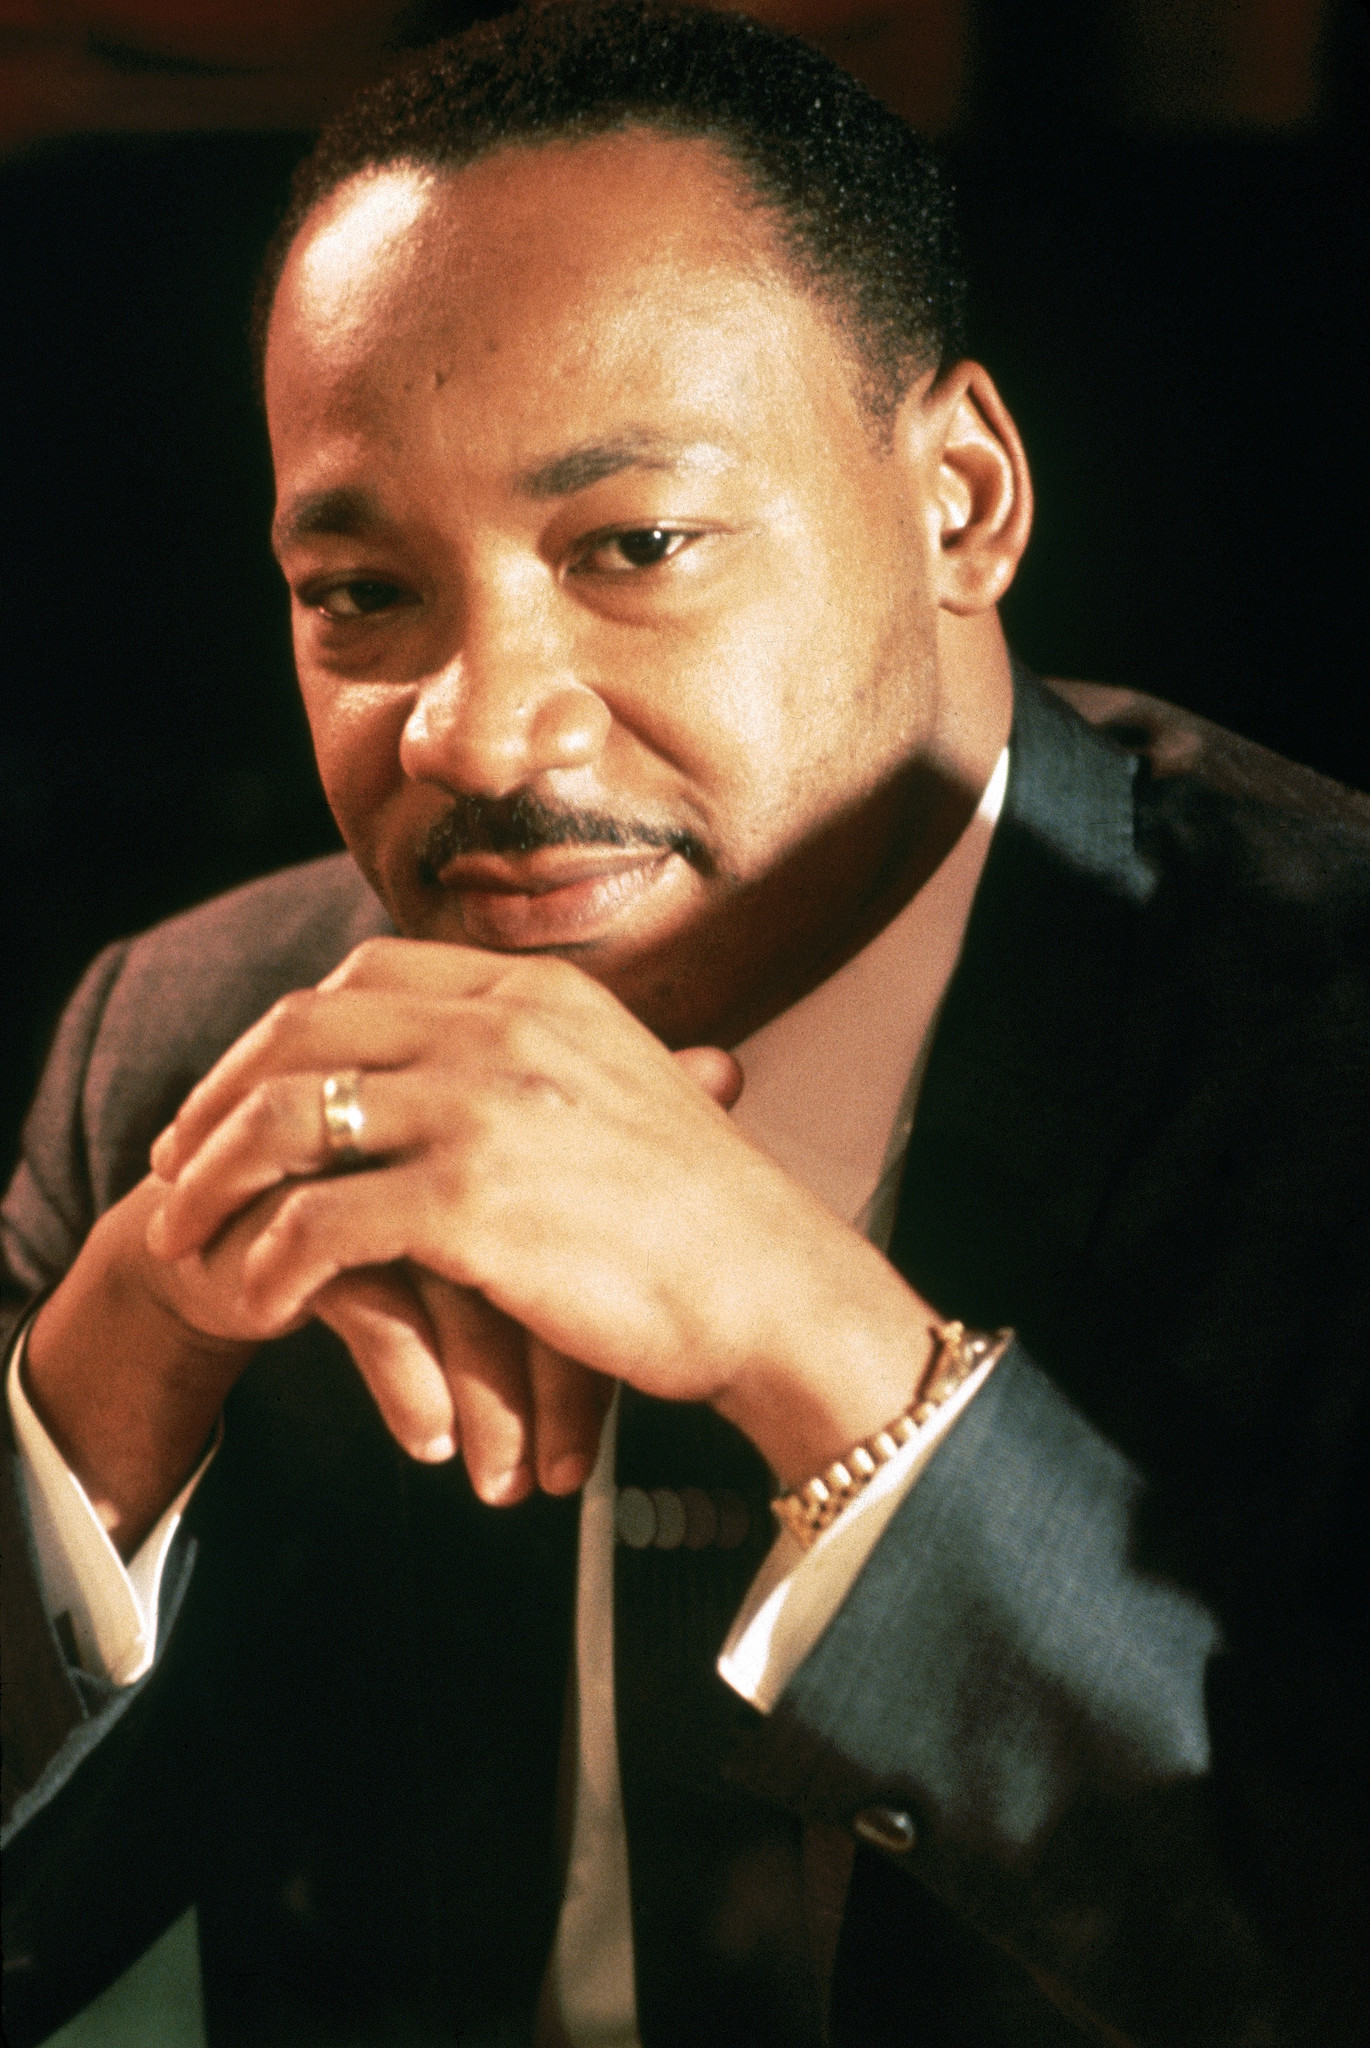 Color Photos Of Dr Martin Luther King Jr | Murderthestout